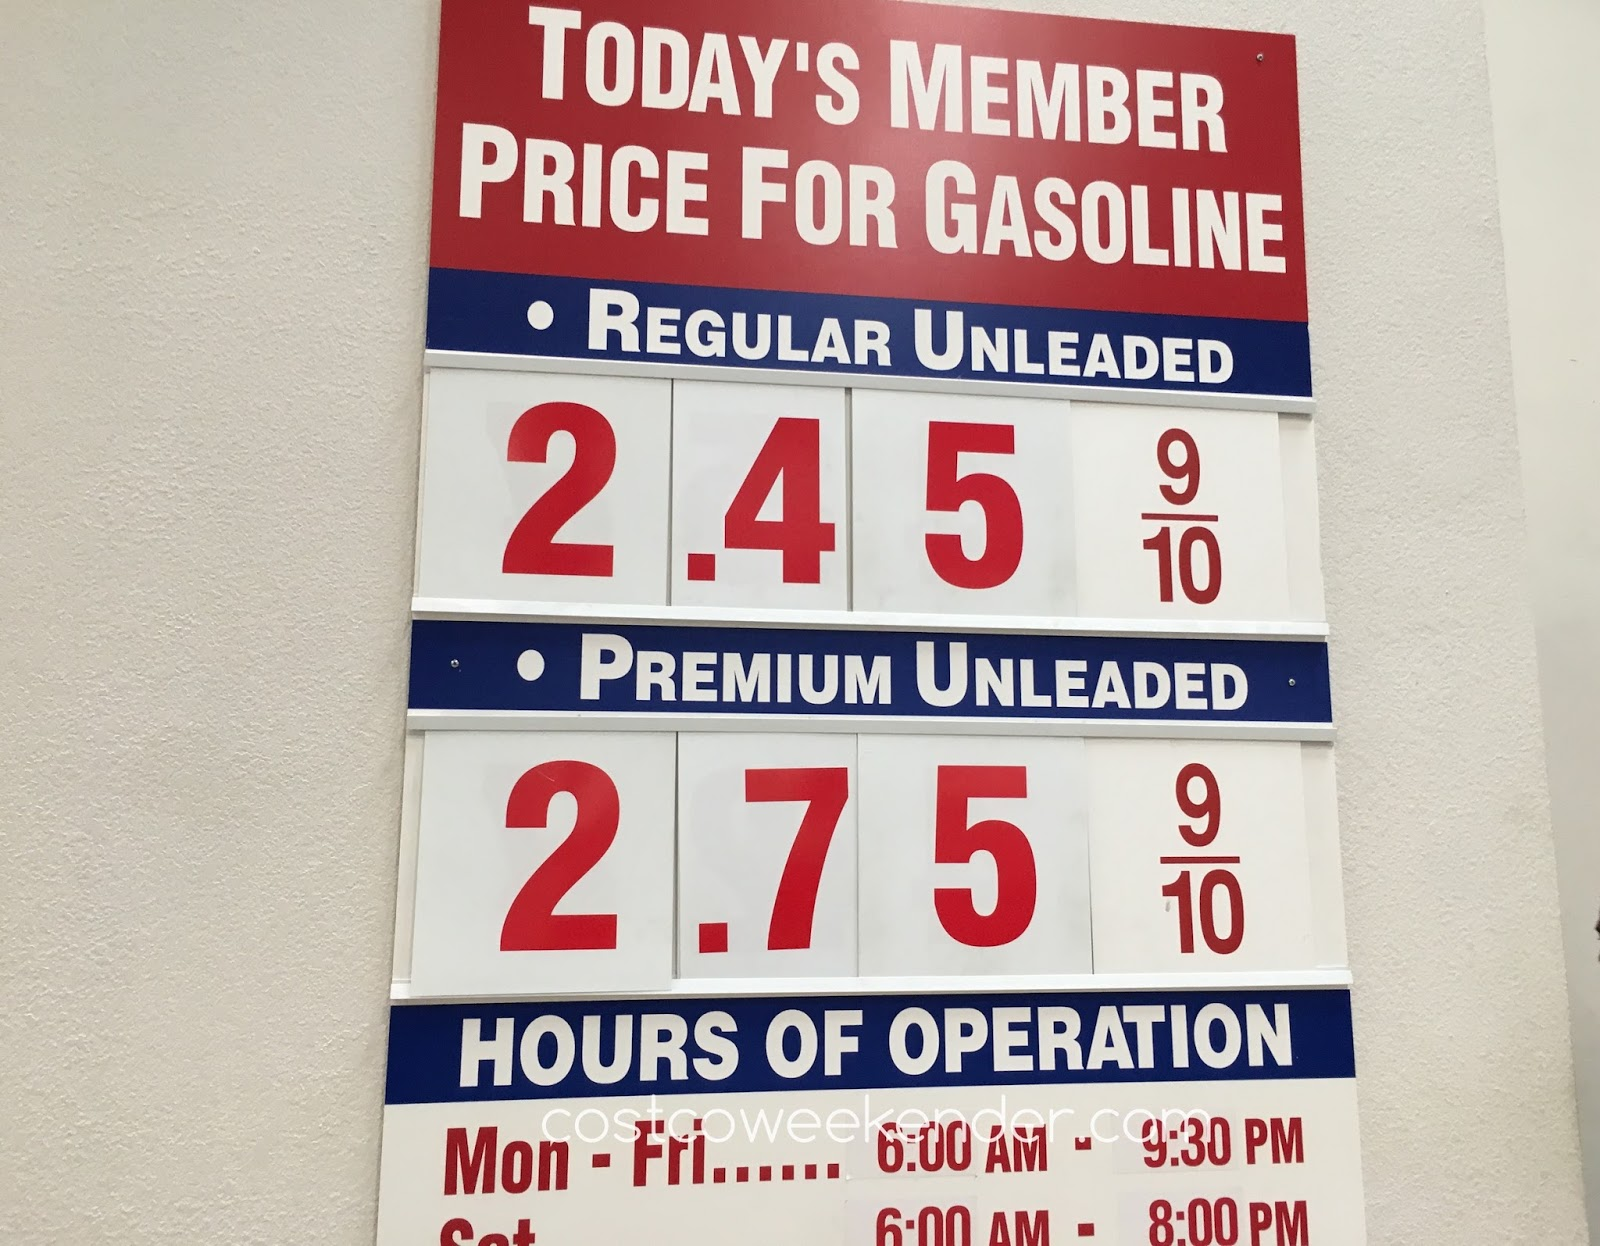 Costco gas for Oct 19, 2016 at Sunnyvale, CA